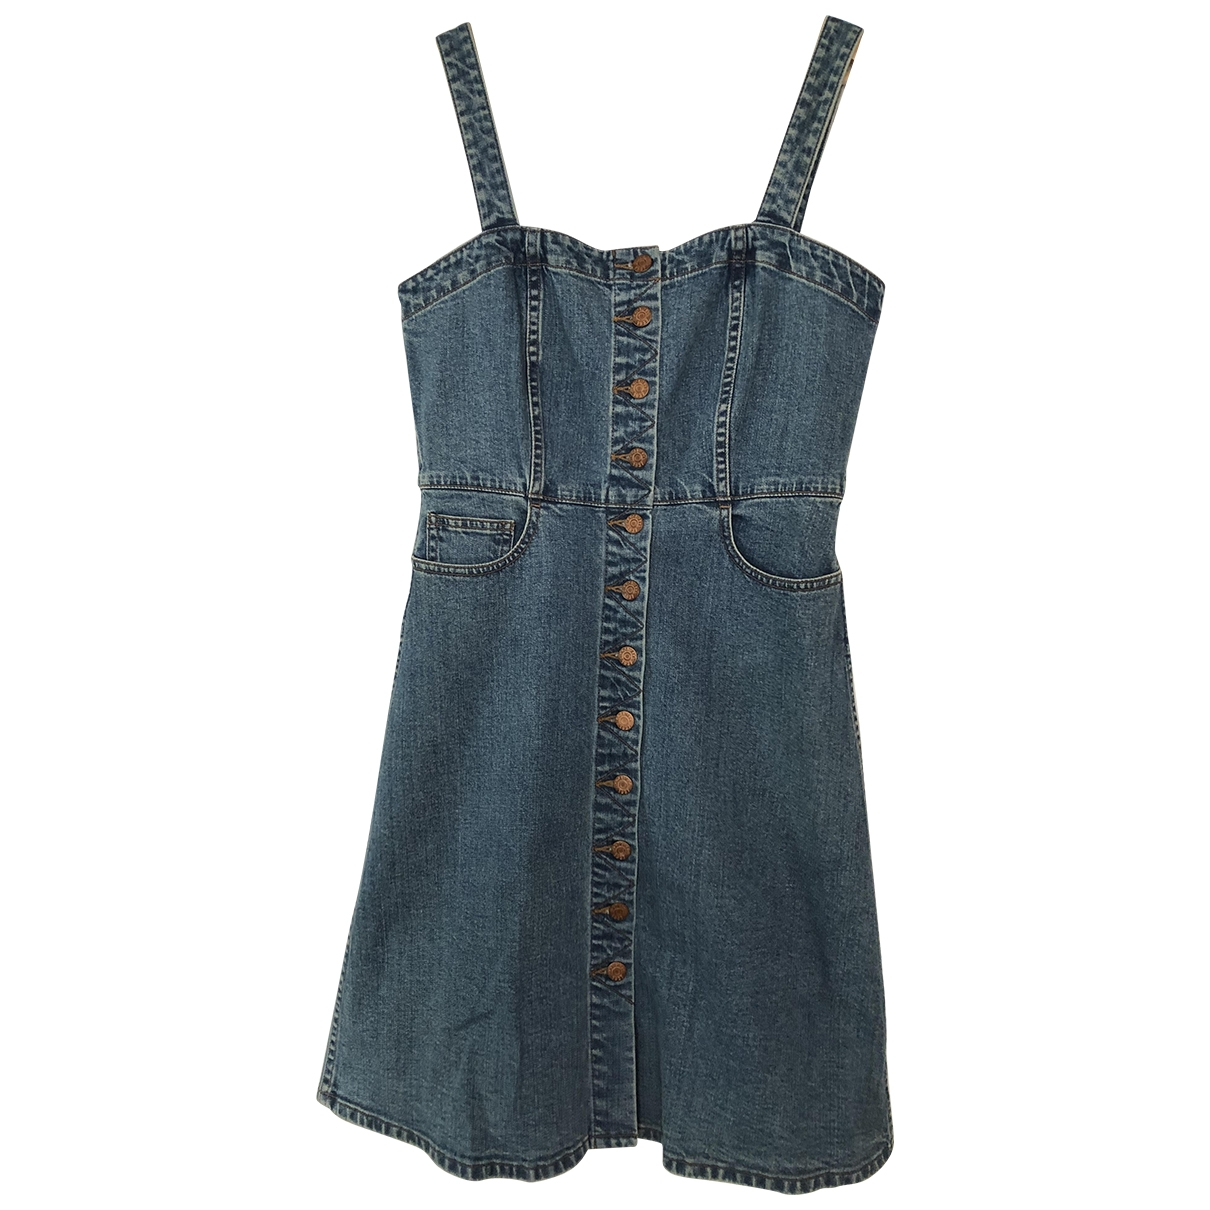 Madewell \N Kleid in  Blau Denim - Jeans